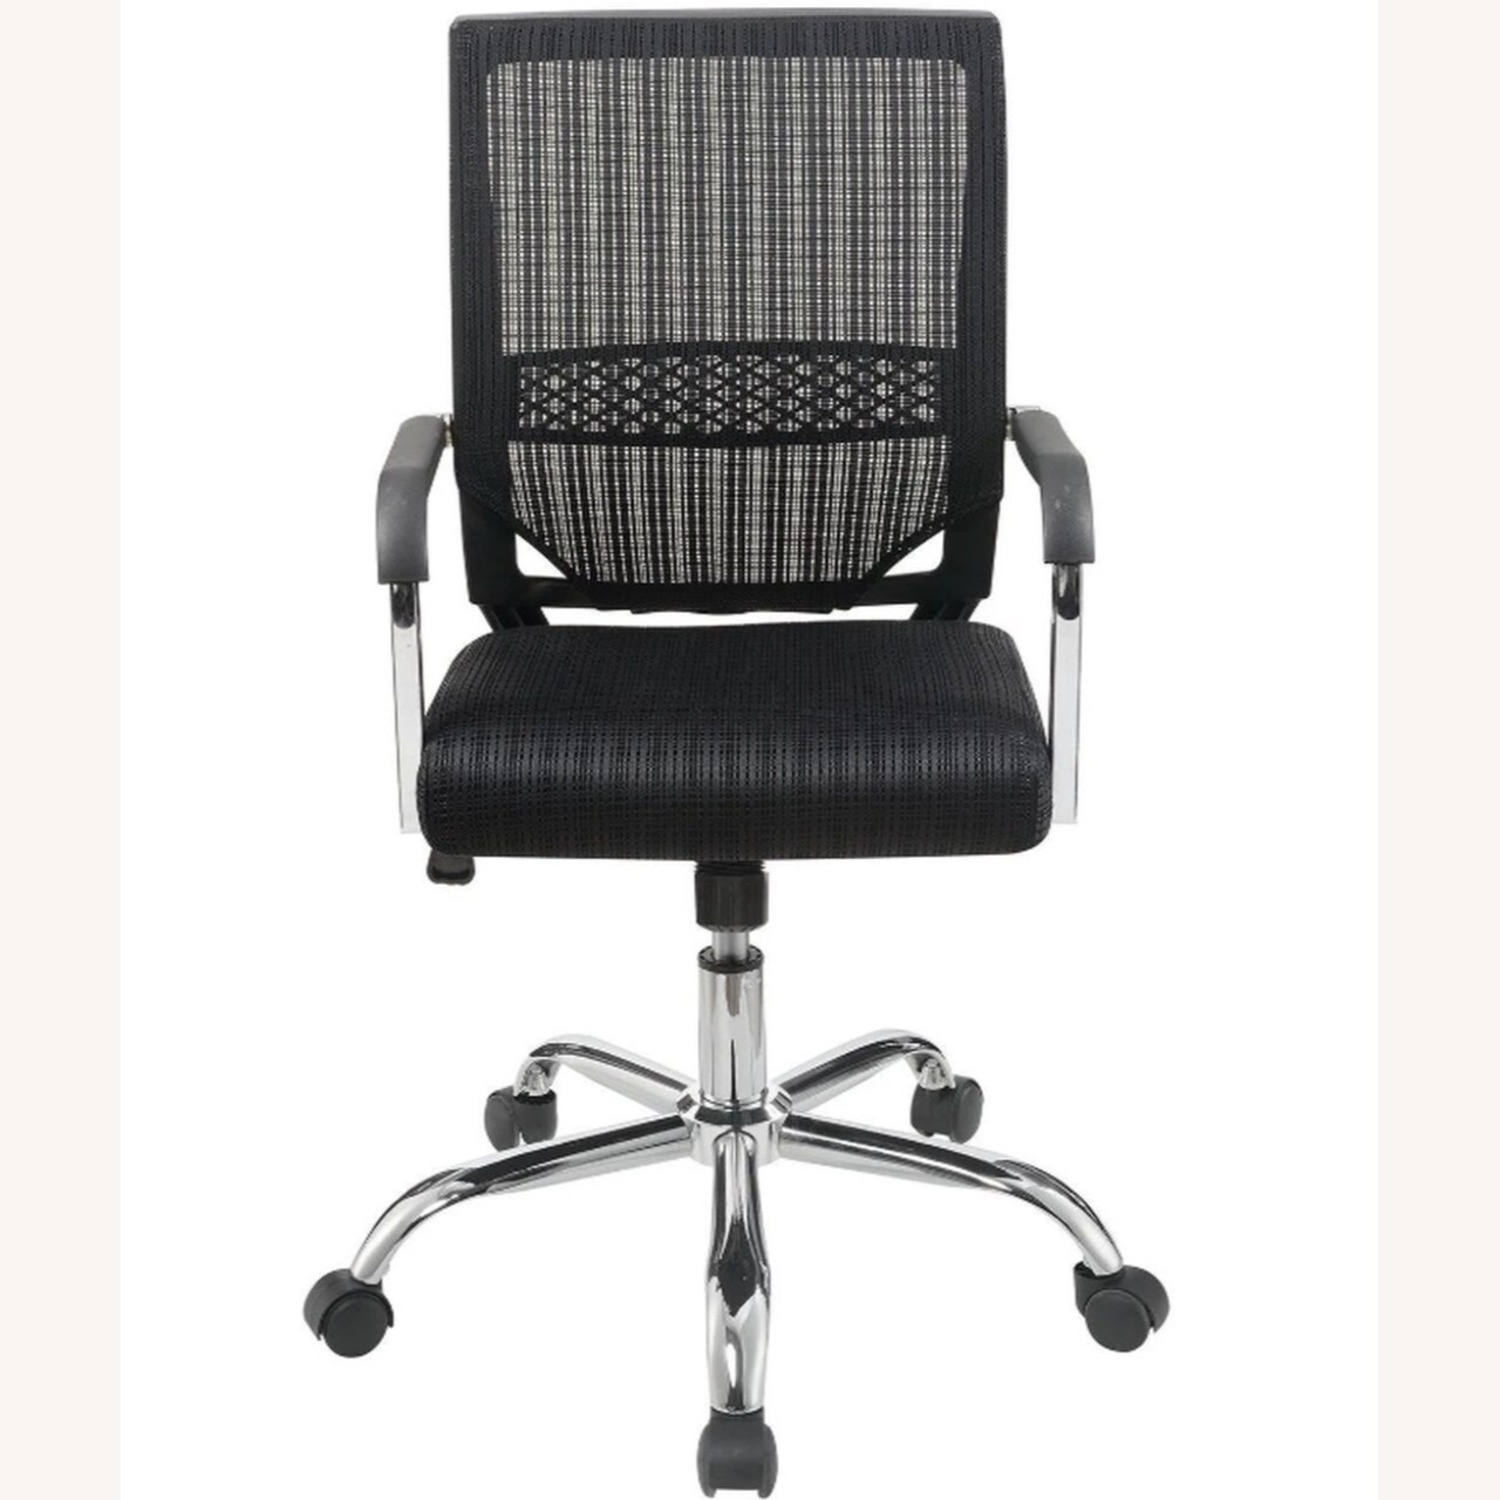 Office Chair In Black Fabric Finish W/ Mesh Back - image-1